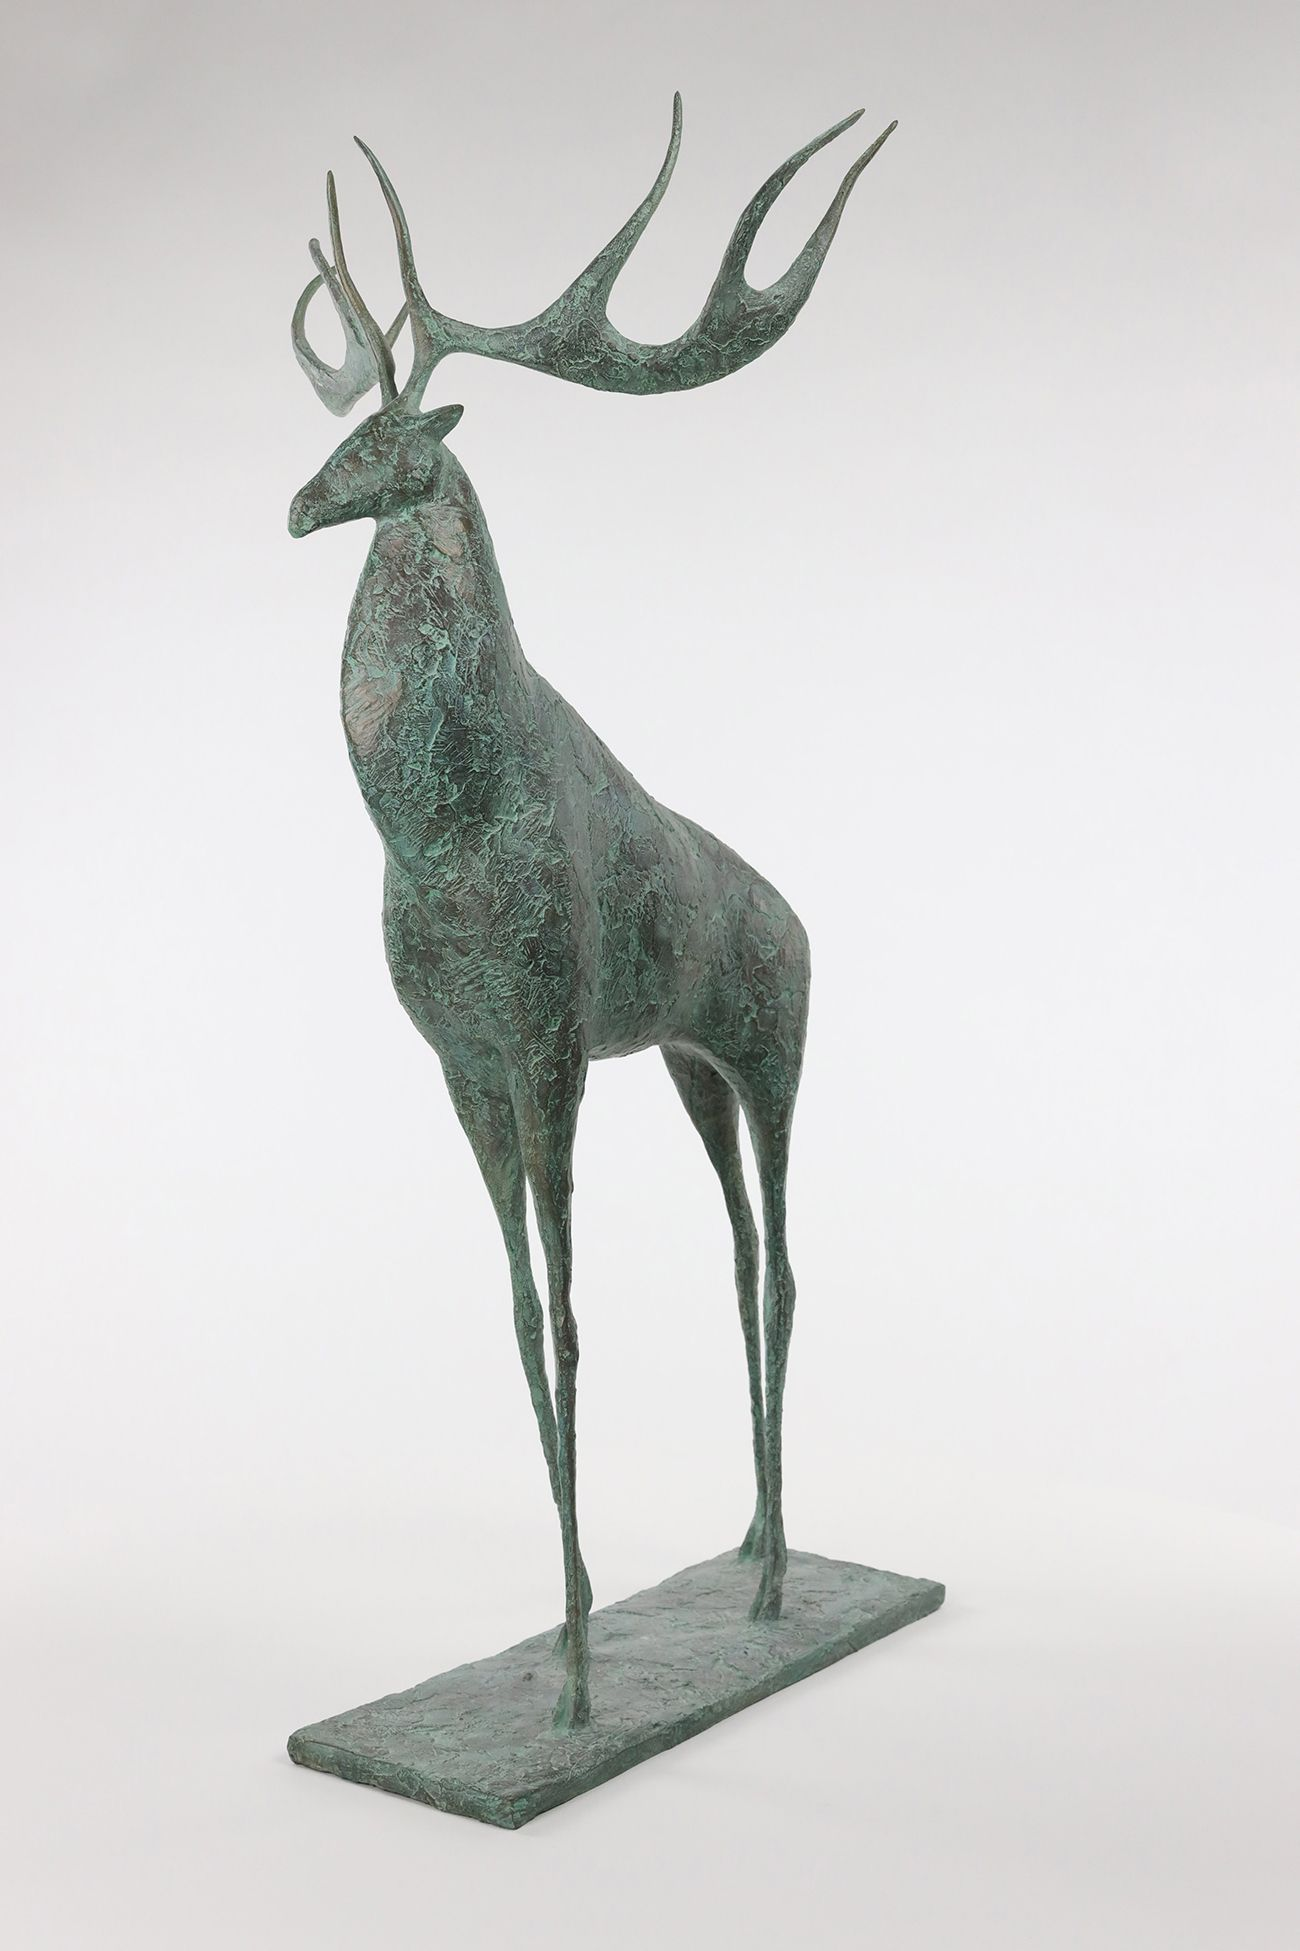 Deer II,Pierre Yermia,Sculpture, detail 2